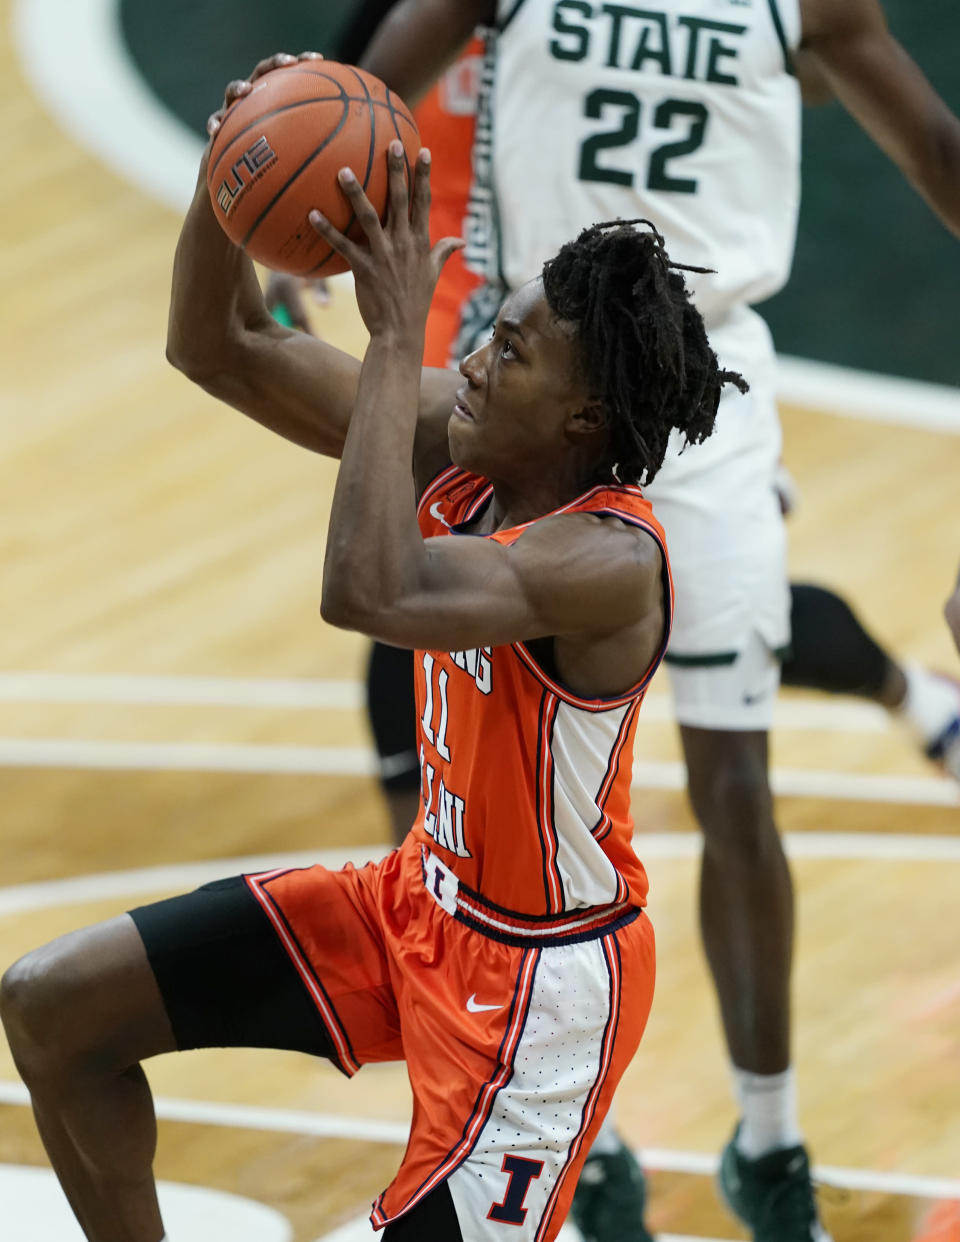 Illinois guard Ayo Dosunmu (11) makes a layup during the first half of an NCAA college basketball game against Michigan State, Tuesday, Feb. 23, 2021, in East Lansing, Mich. (AP Photo/Carlos Osorio)